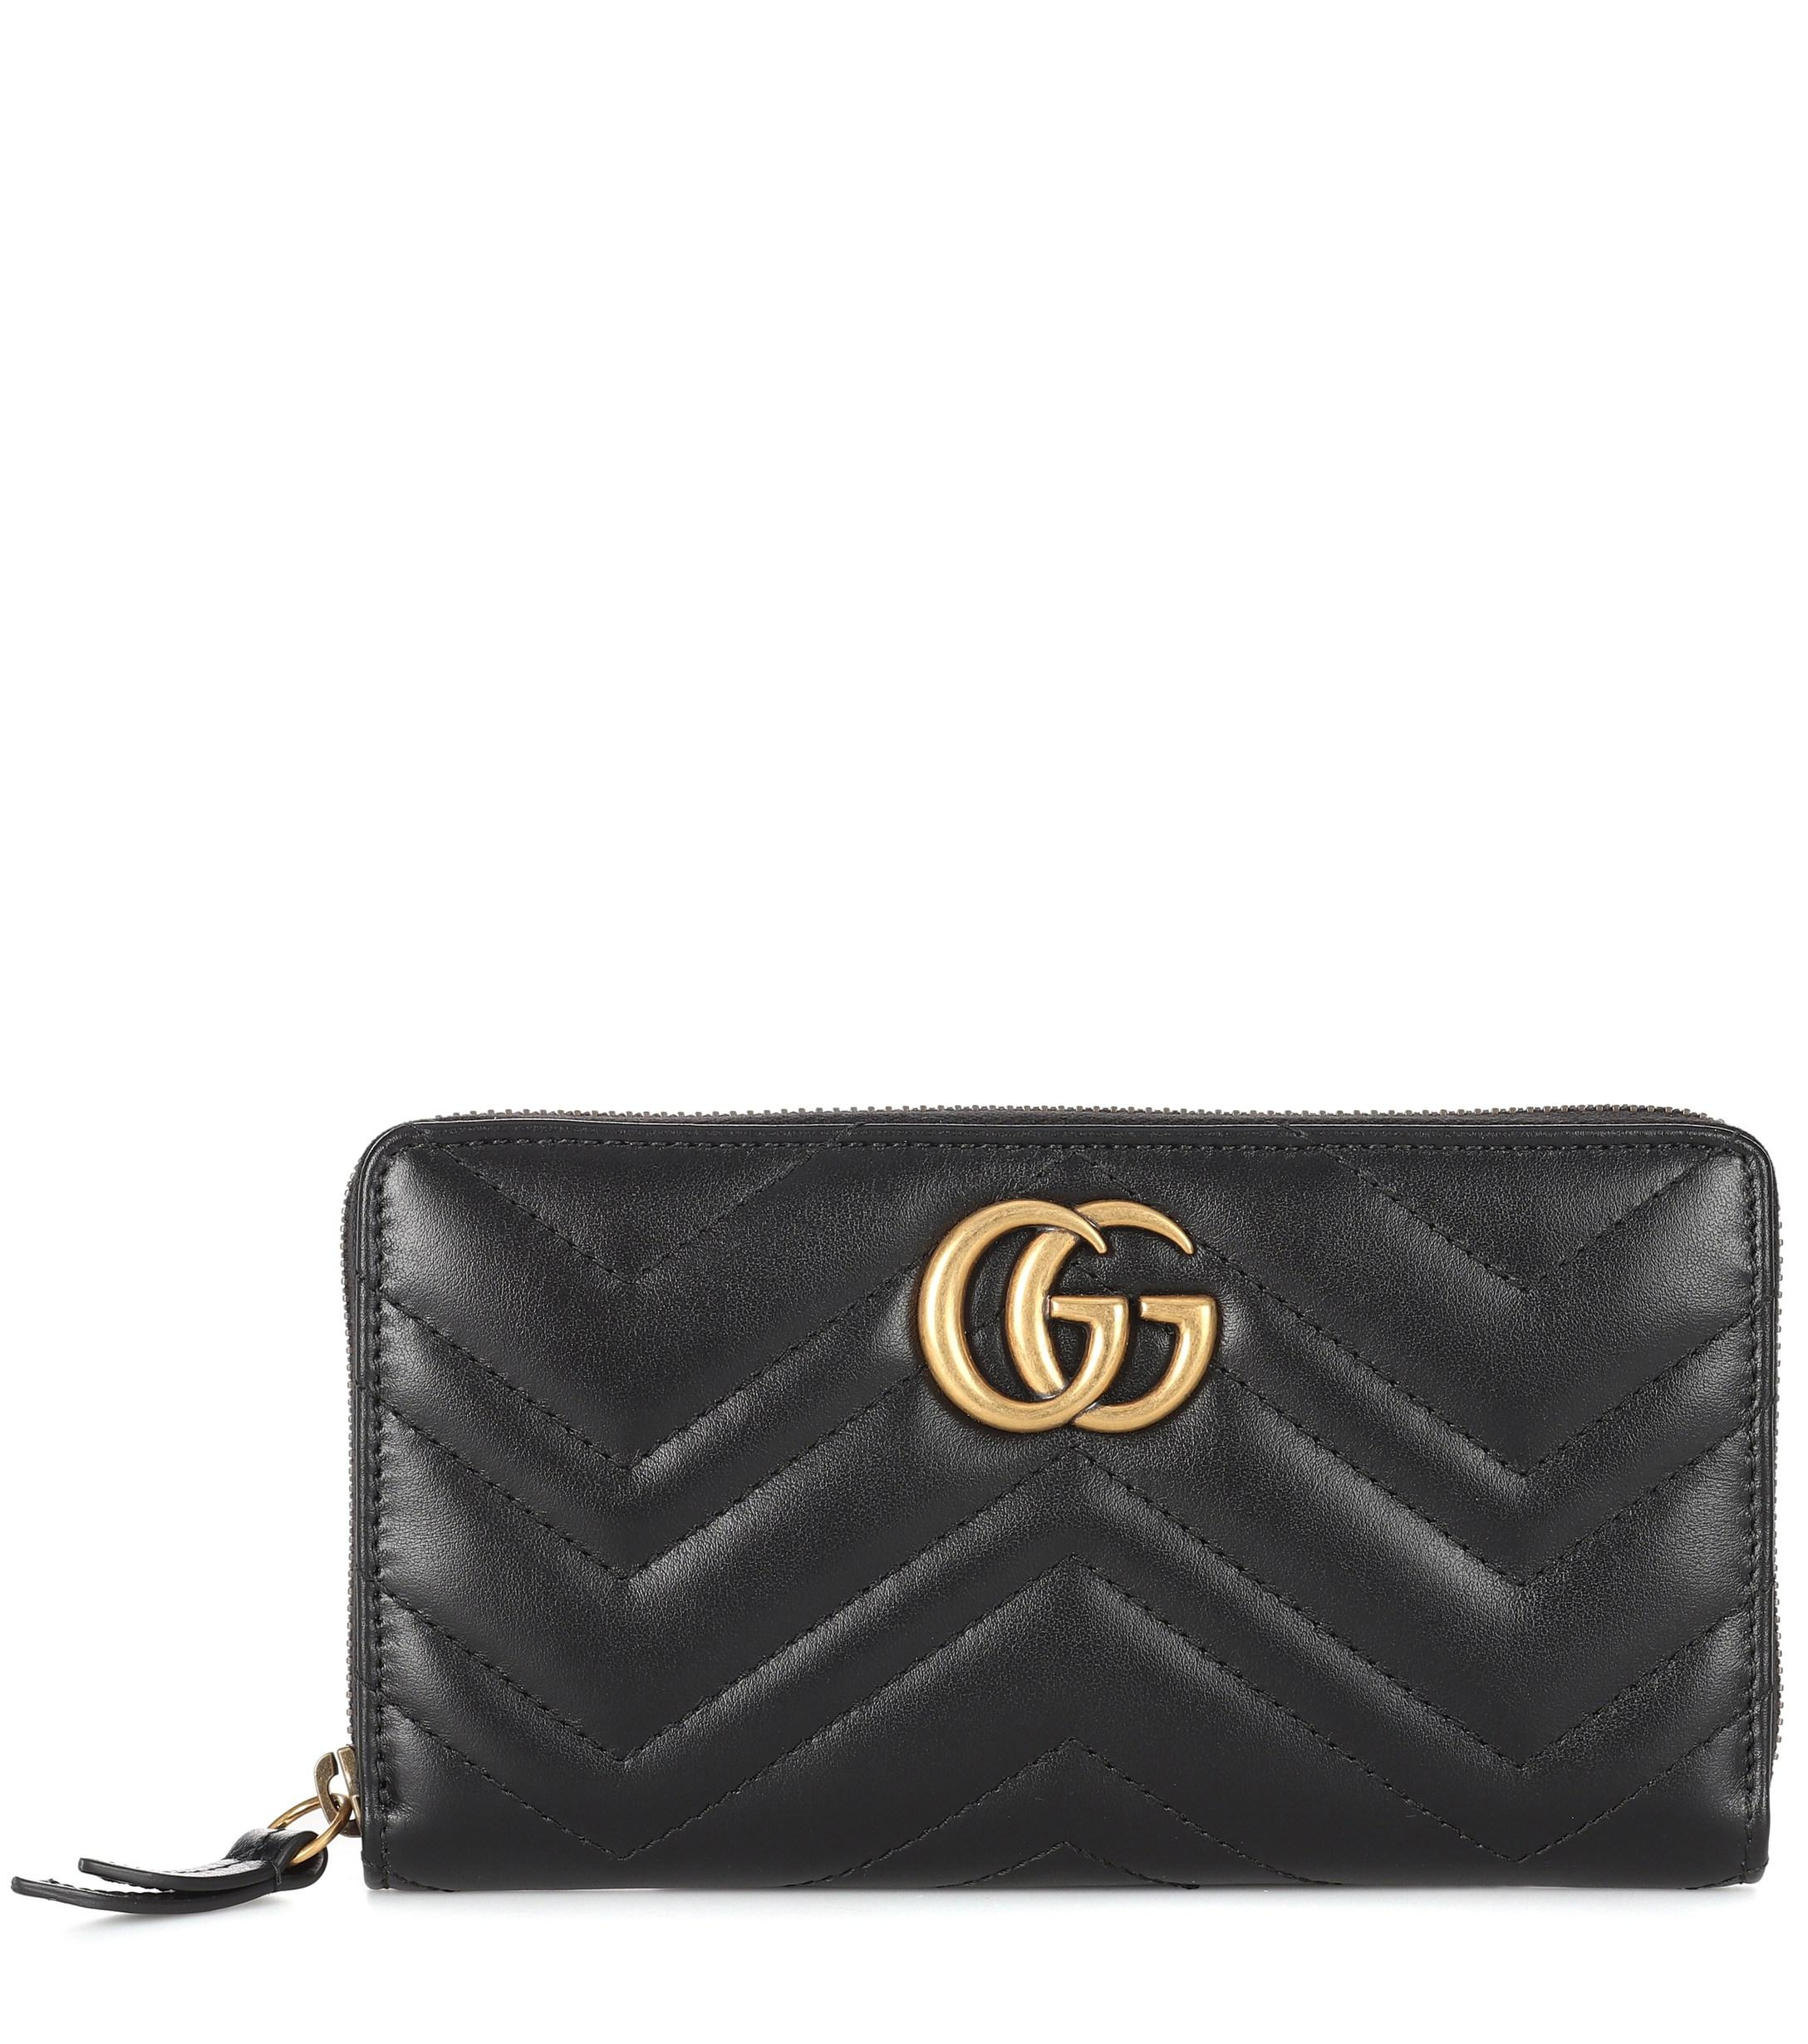 72c42377ae2 Lyst - Gucci GG Marmont Leather Wallet in Black - Save ...